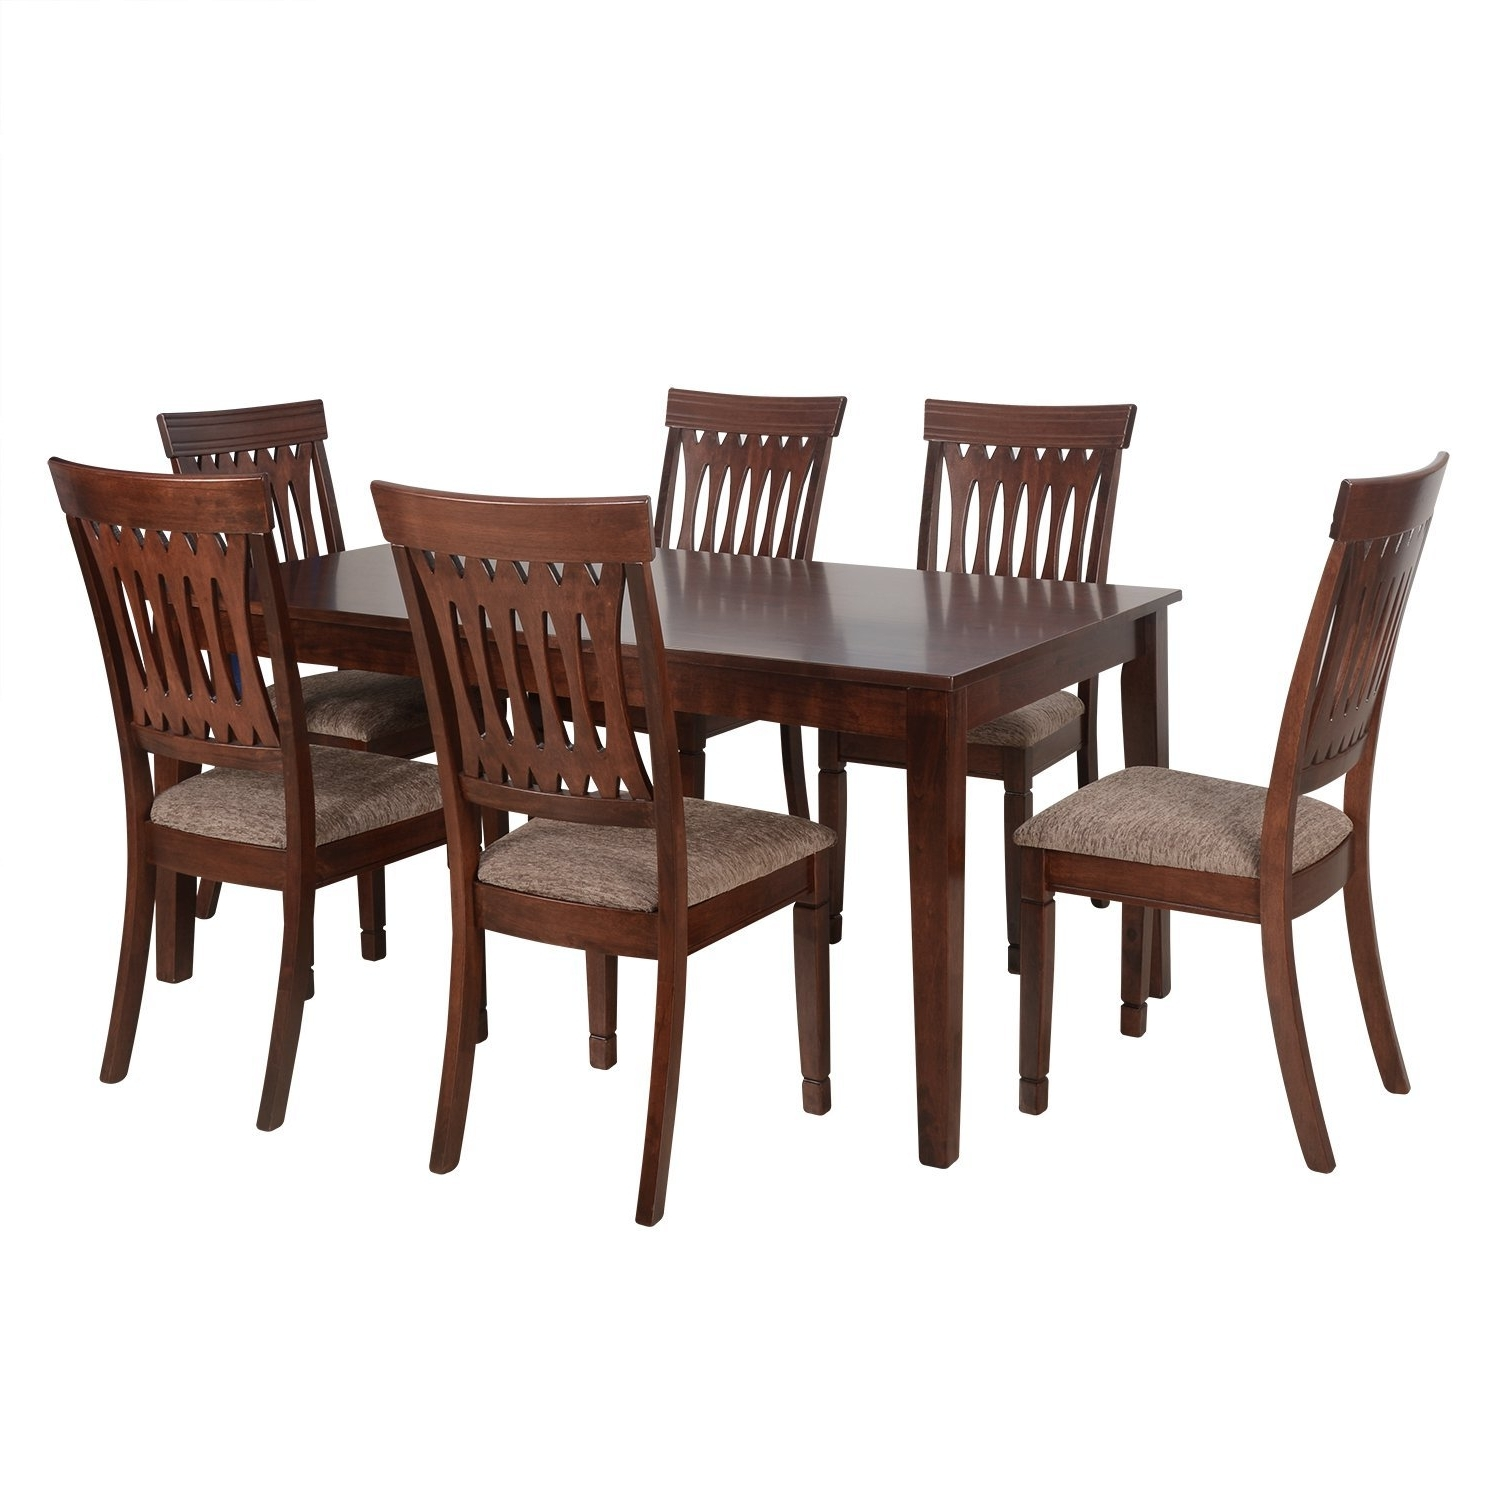 Six Seater Dining Set – Pharneechar – Online Furniture Store – Delhi/ncr Within Popular Six Seater Dining Tables (View 25 of 25)